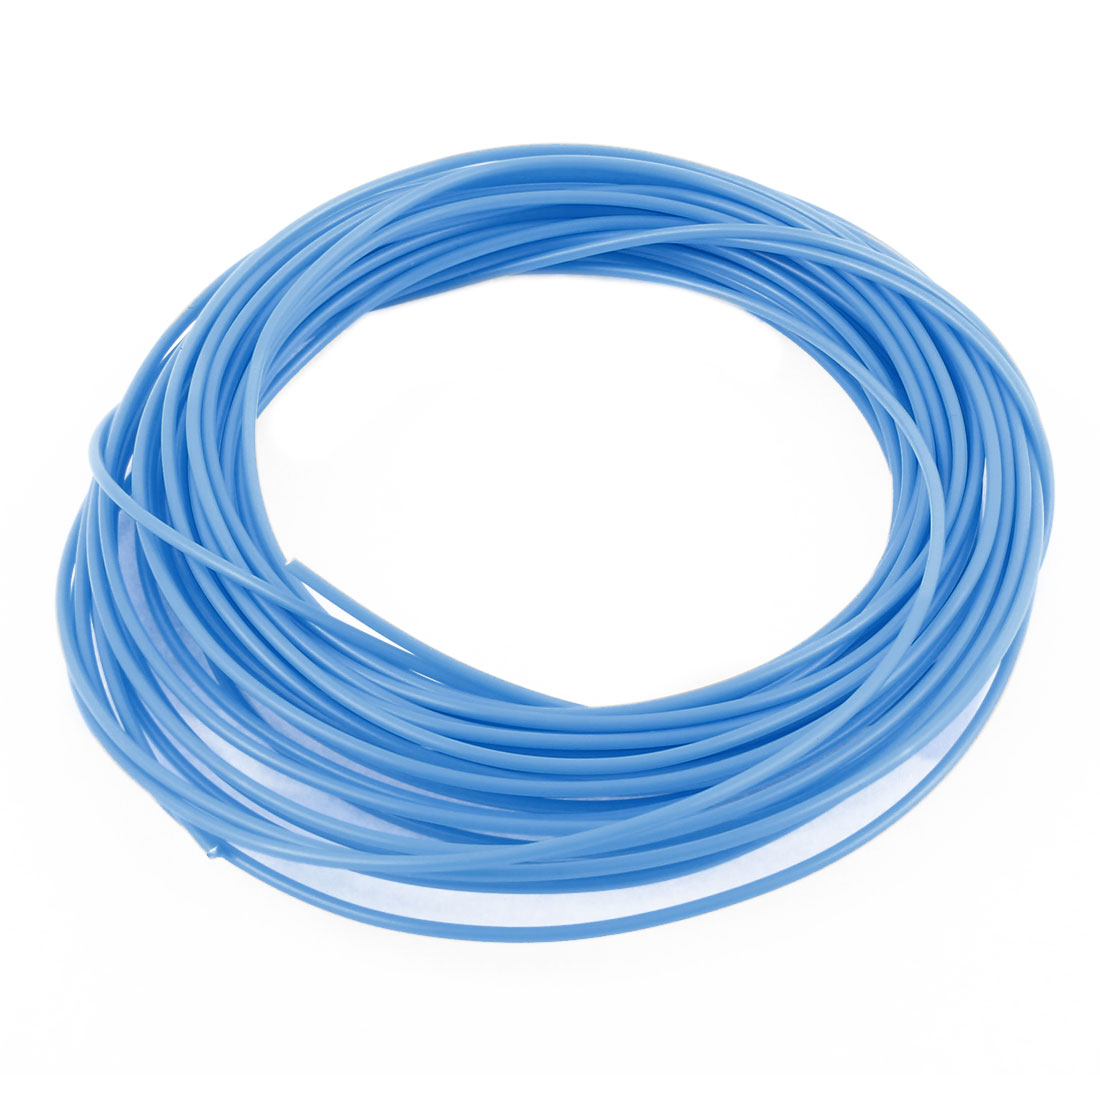 10m 3D Printer Pen Painting Filament Refills ABS Printing Material Fluo Blue